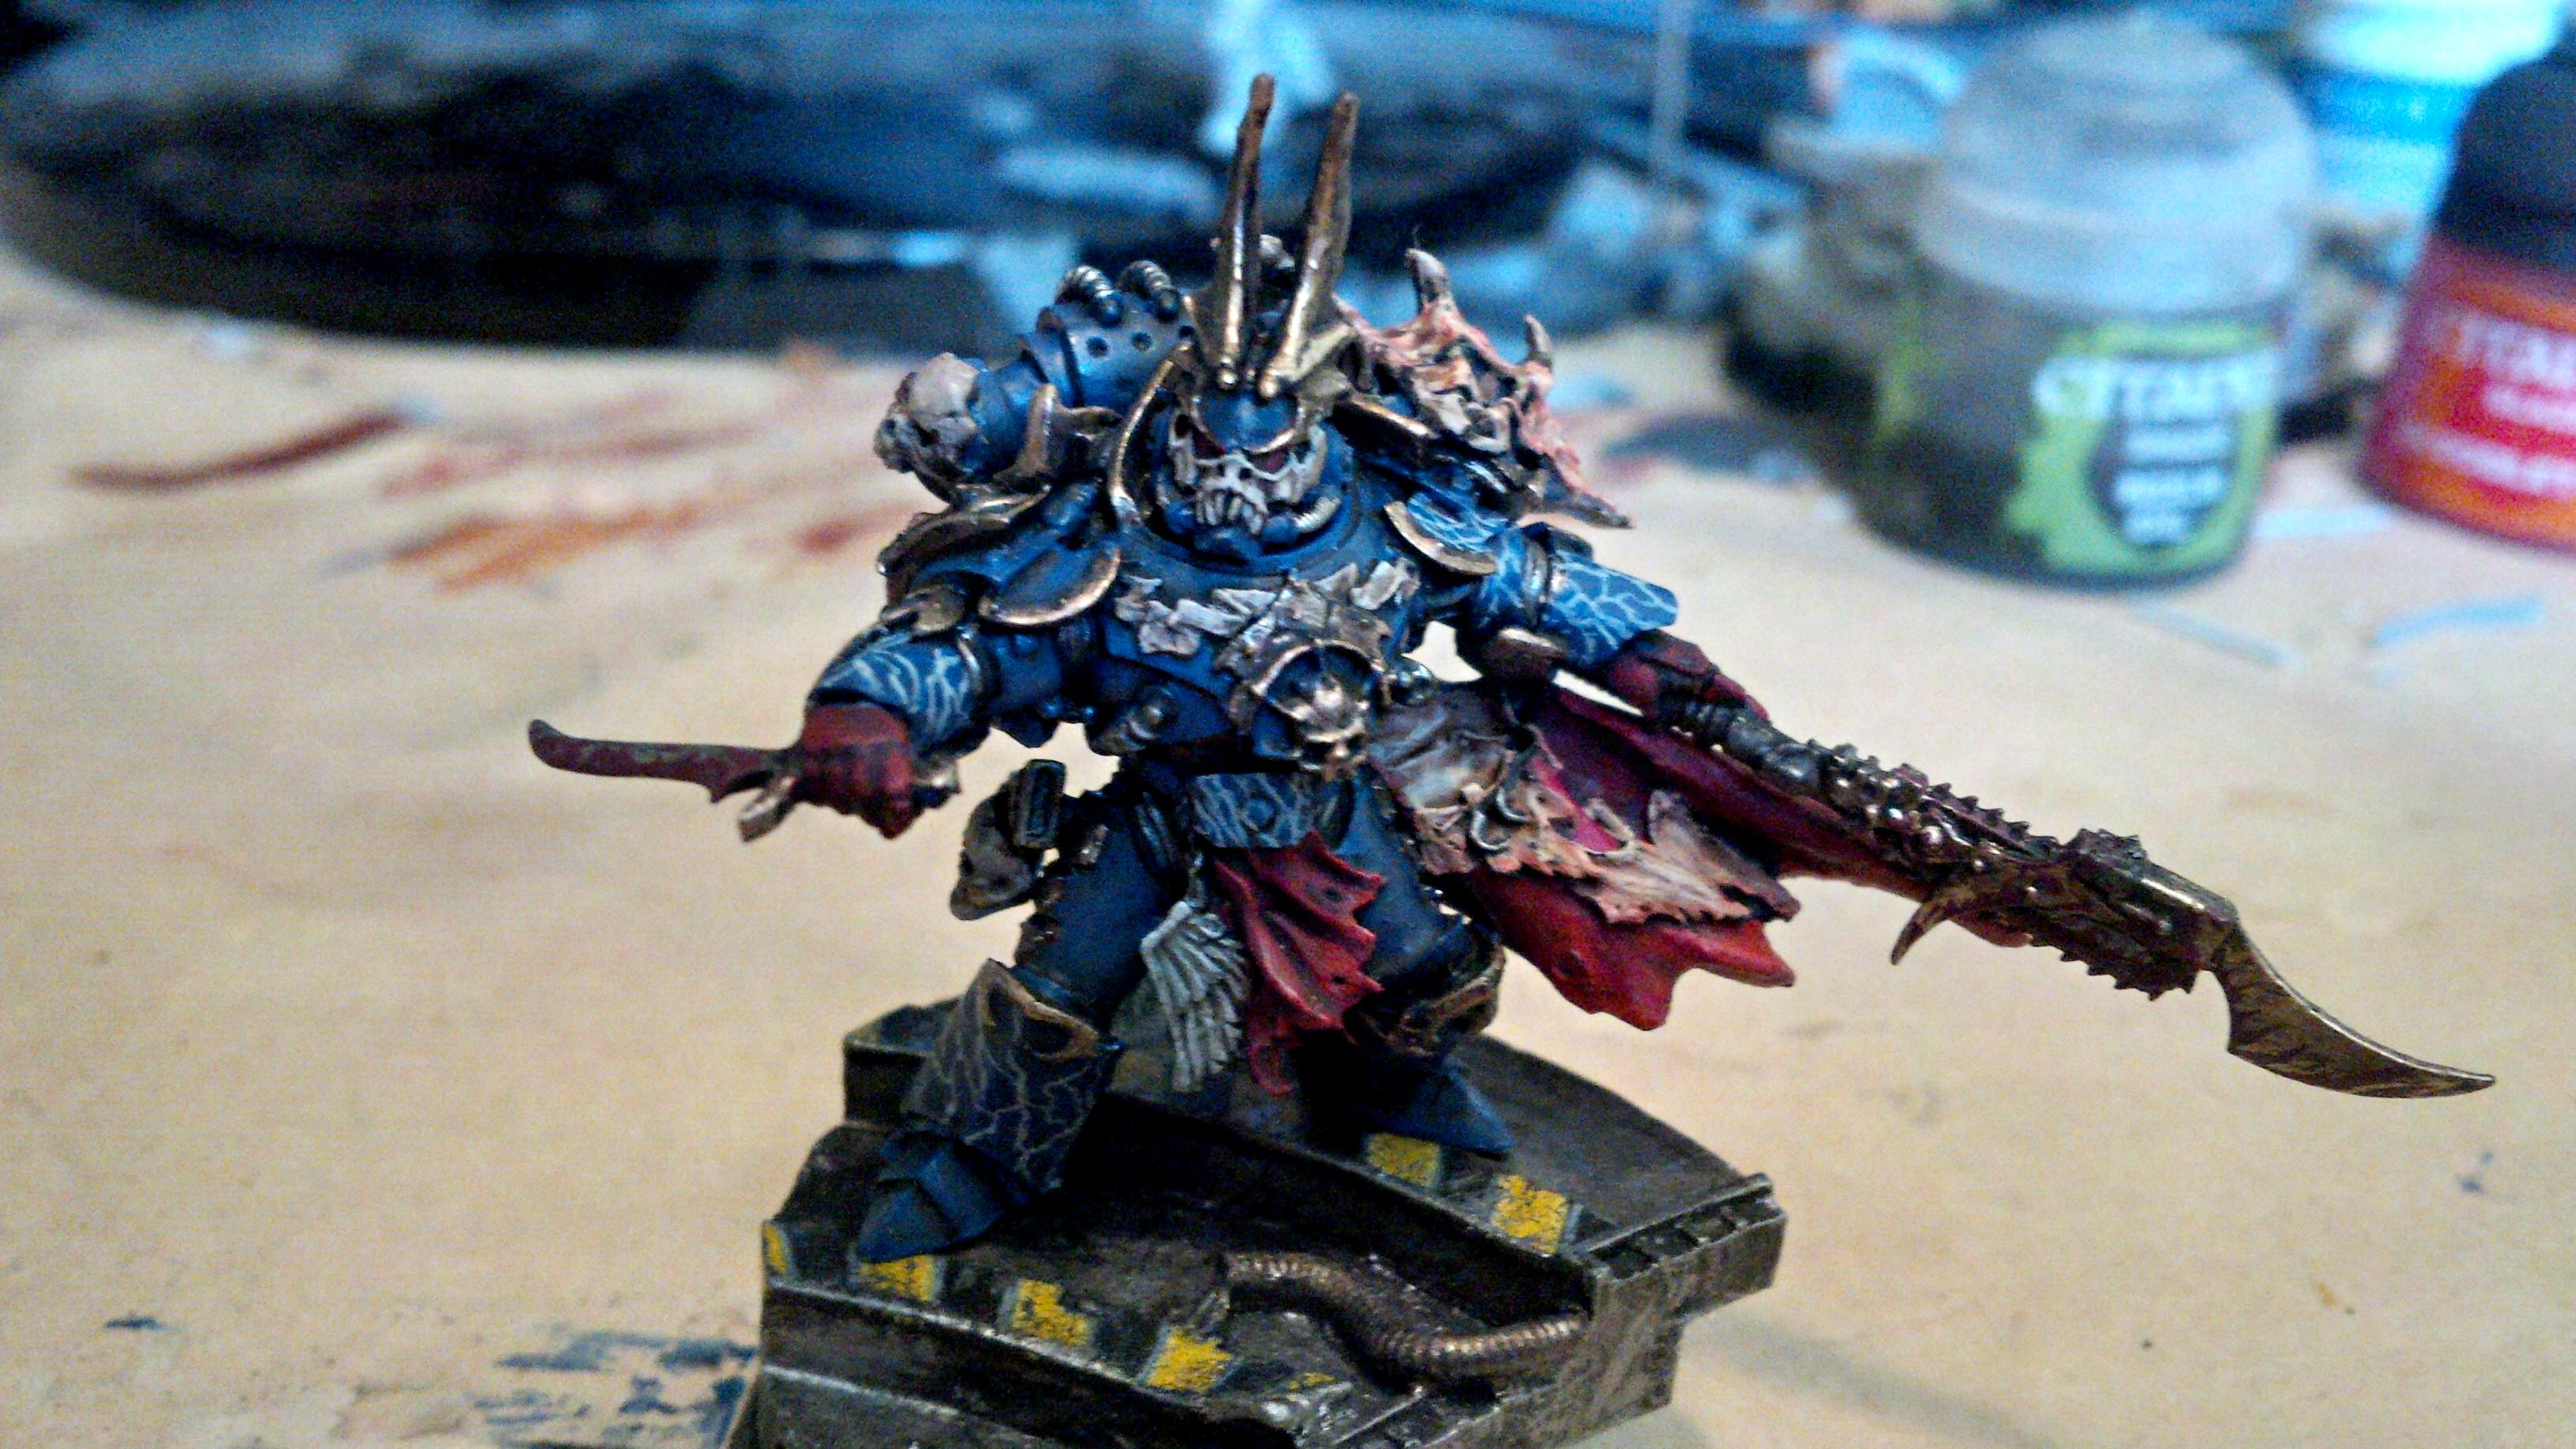 30k, Blue, Gold, Horus Heresy, Lightning, Night Lord, Sevetar, Skull, Updated